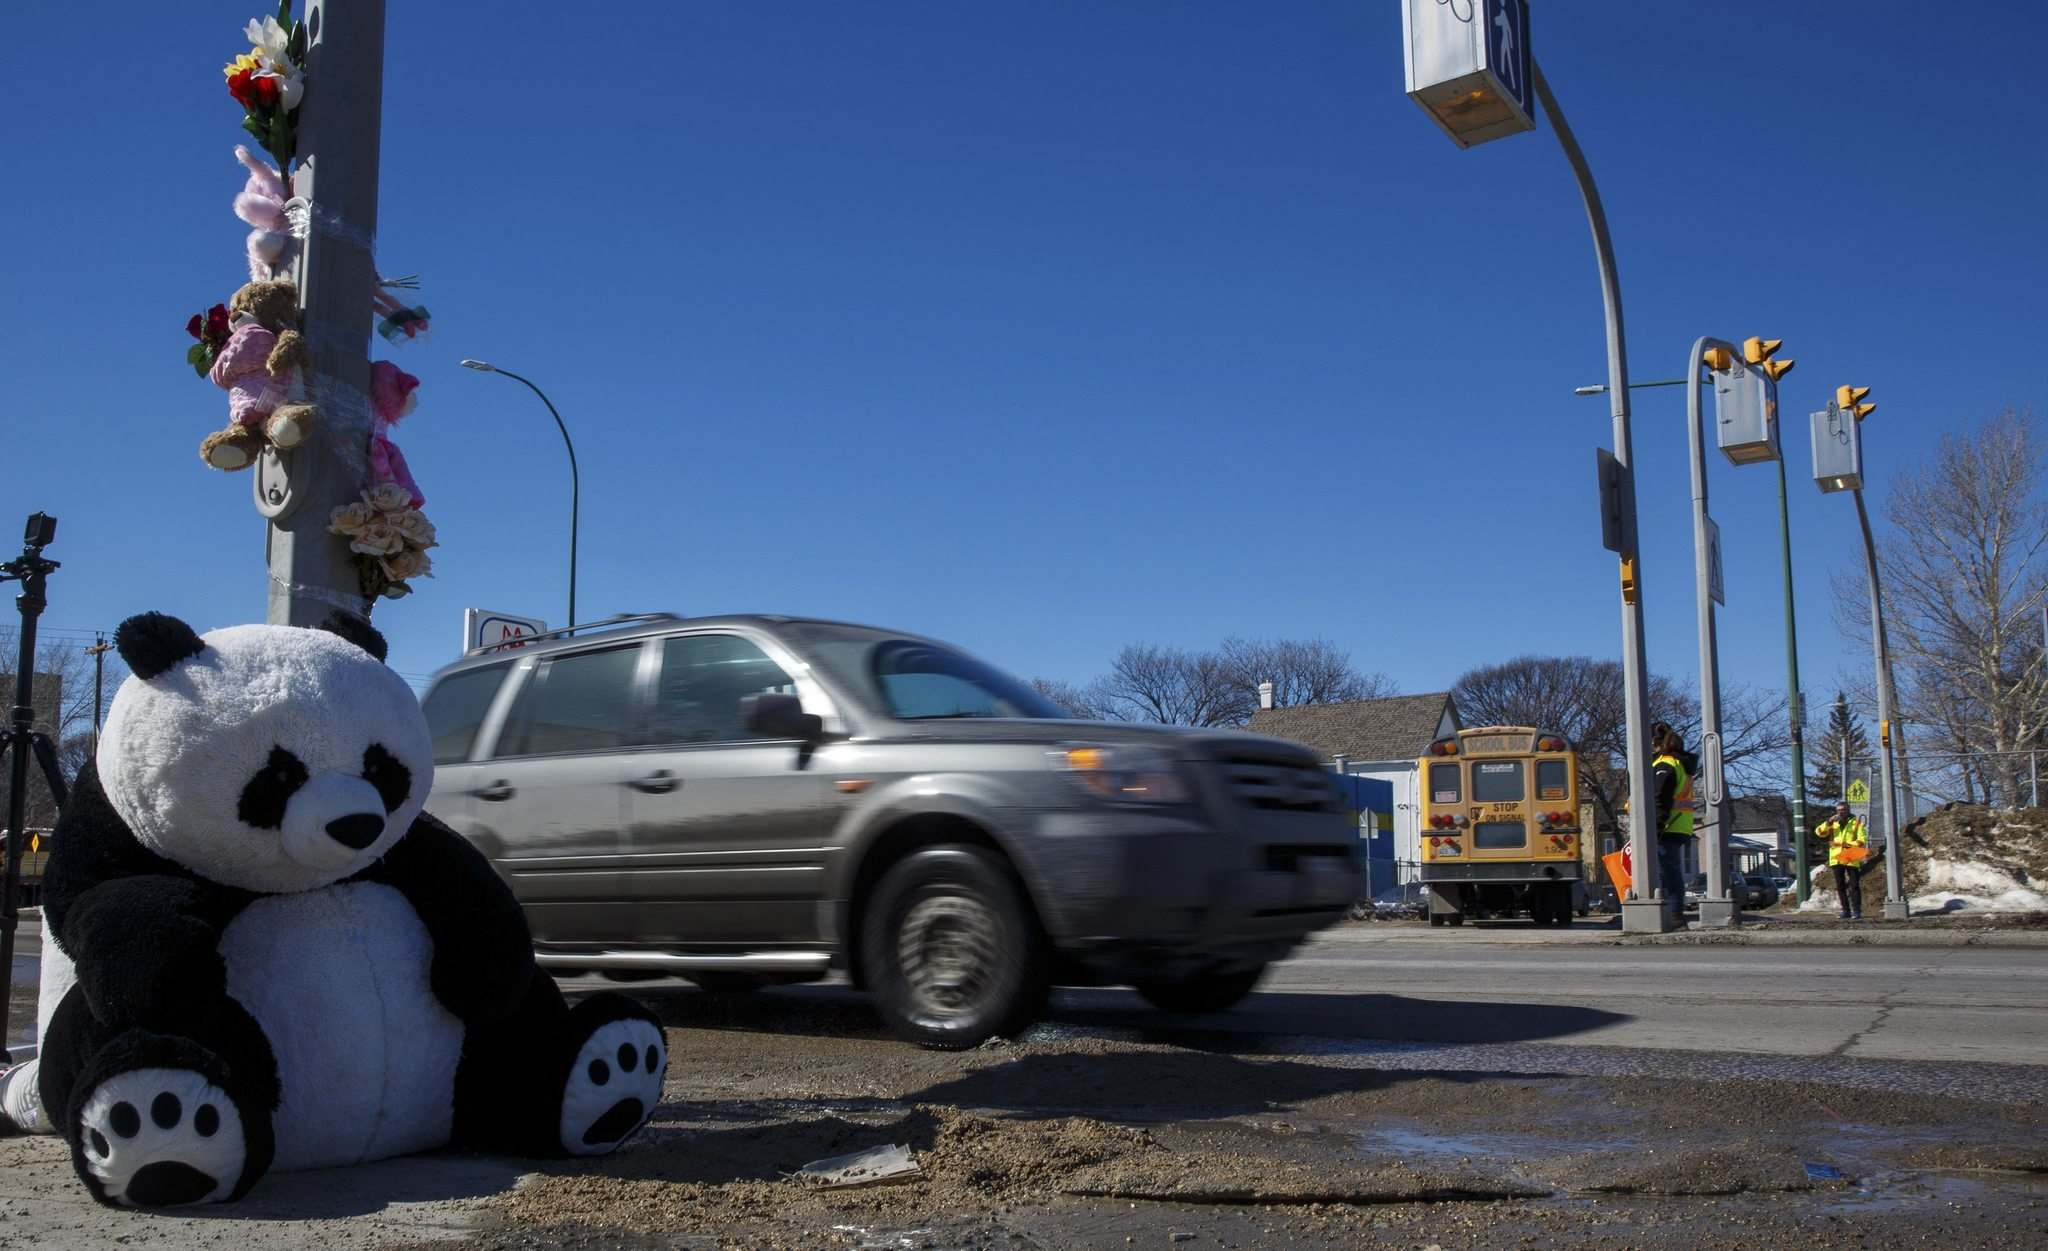 MIKE DEAL / WINNIPEG FREE PRESS</p><p>Traffic consultant Jeannette Montufar suggests flashing amber lights might enhance safety at the Isabel-Alexander pedestrian corridor